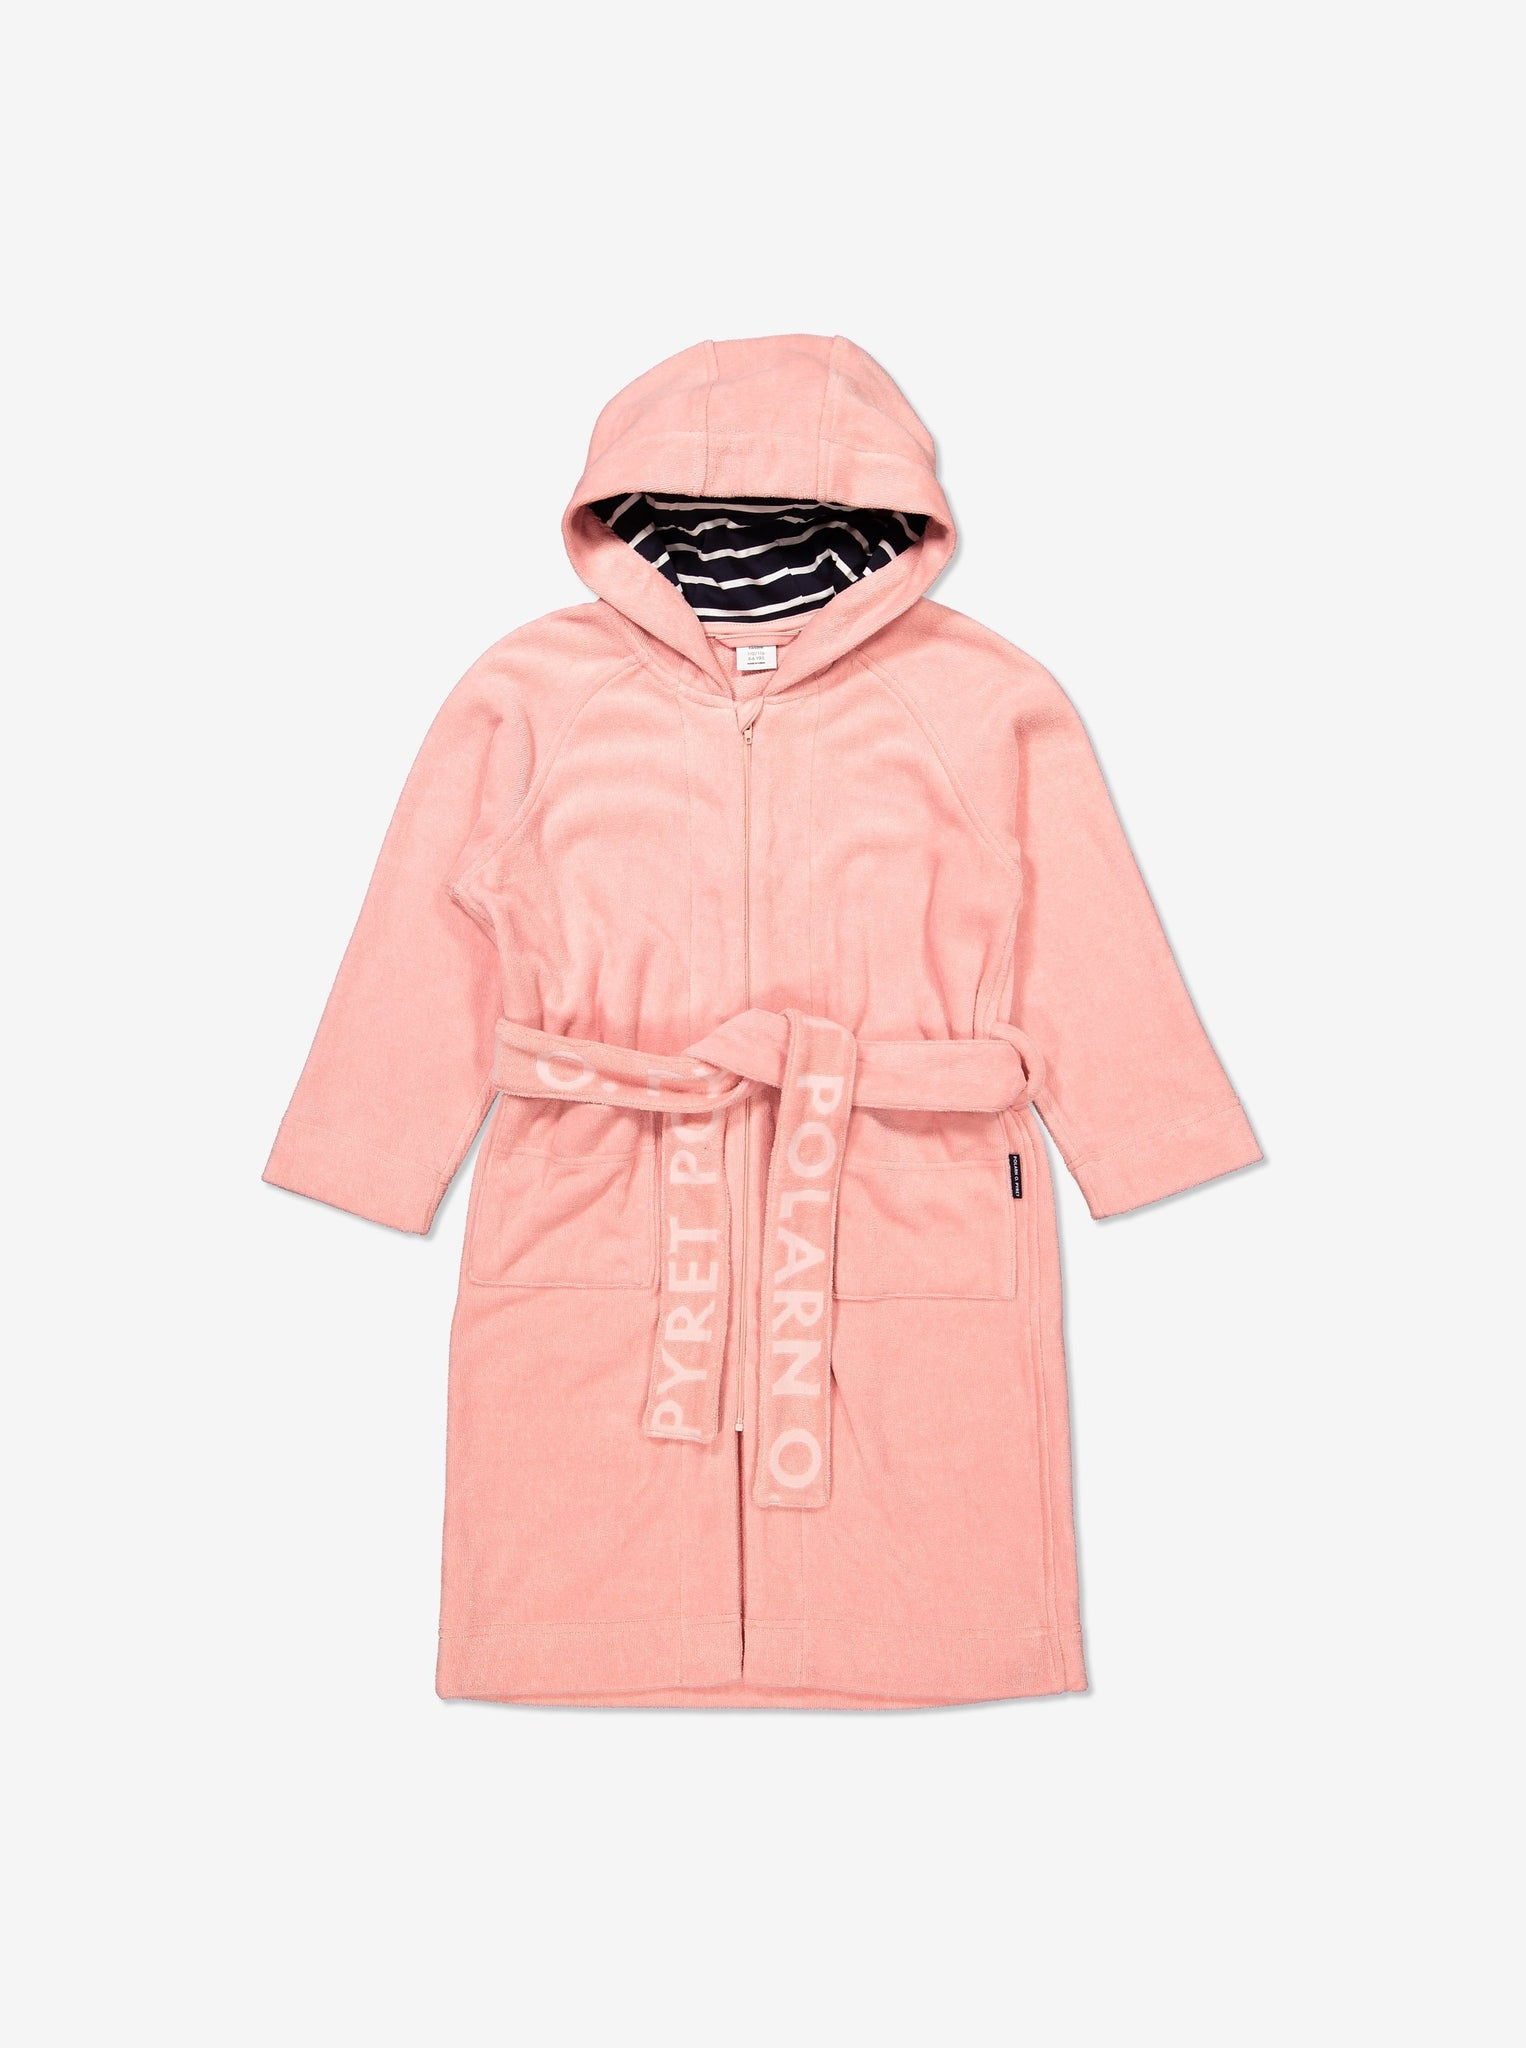 Kids Organic Cotton Pink Dressing Gown Bathrobe